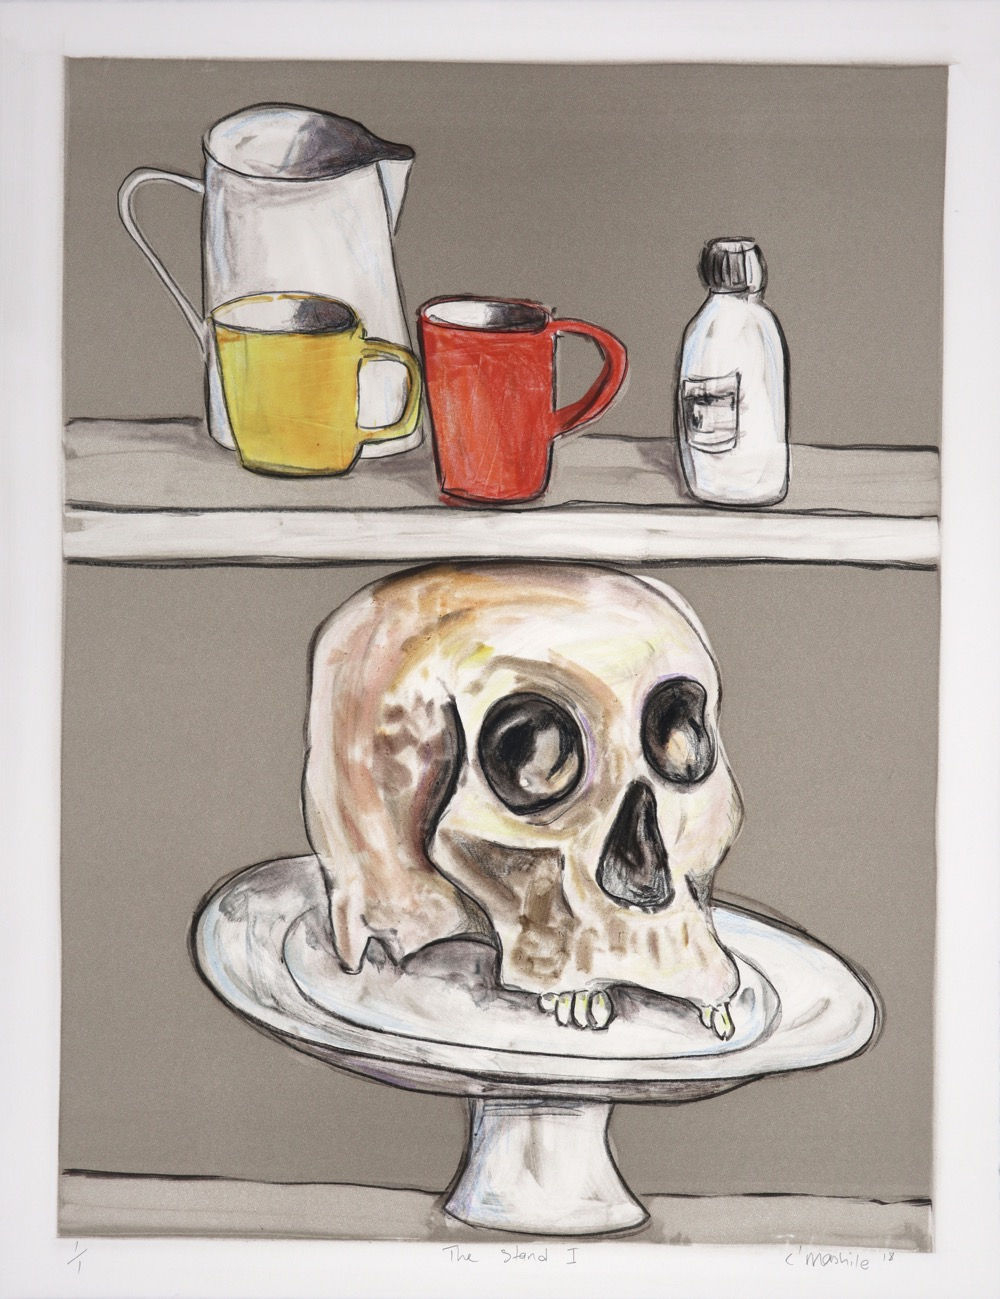 Shelves holding kitchen vessels and human skull on a cake stand.